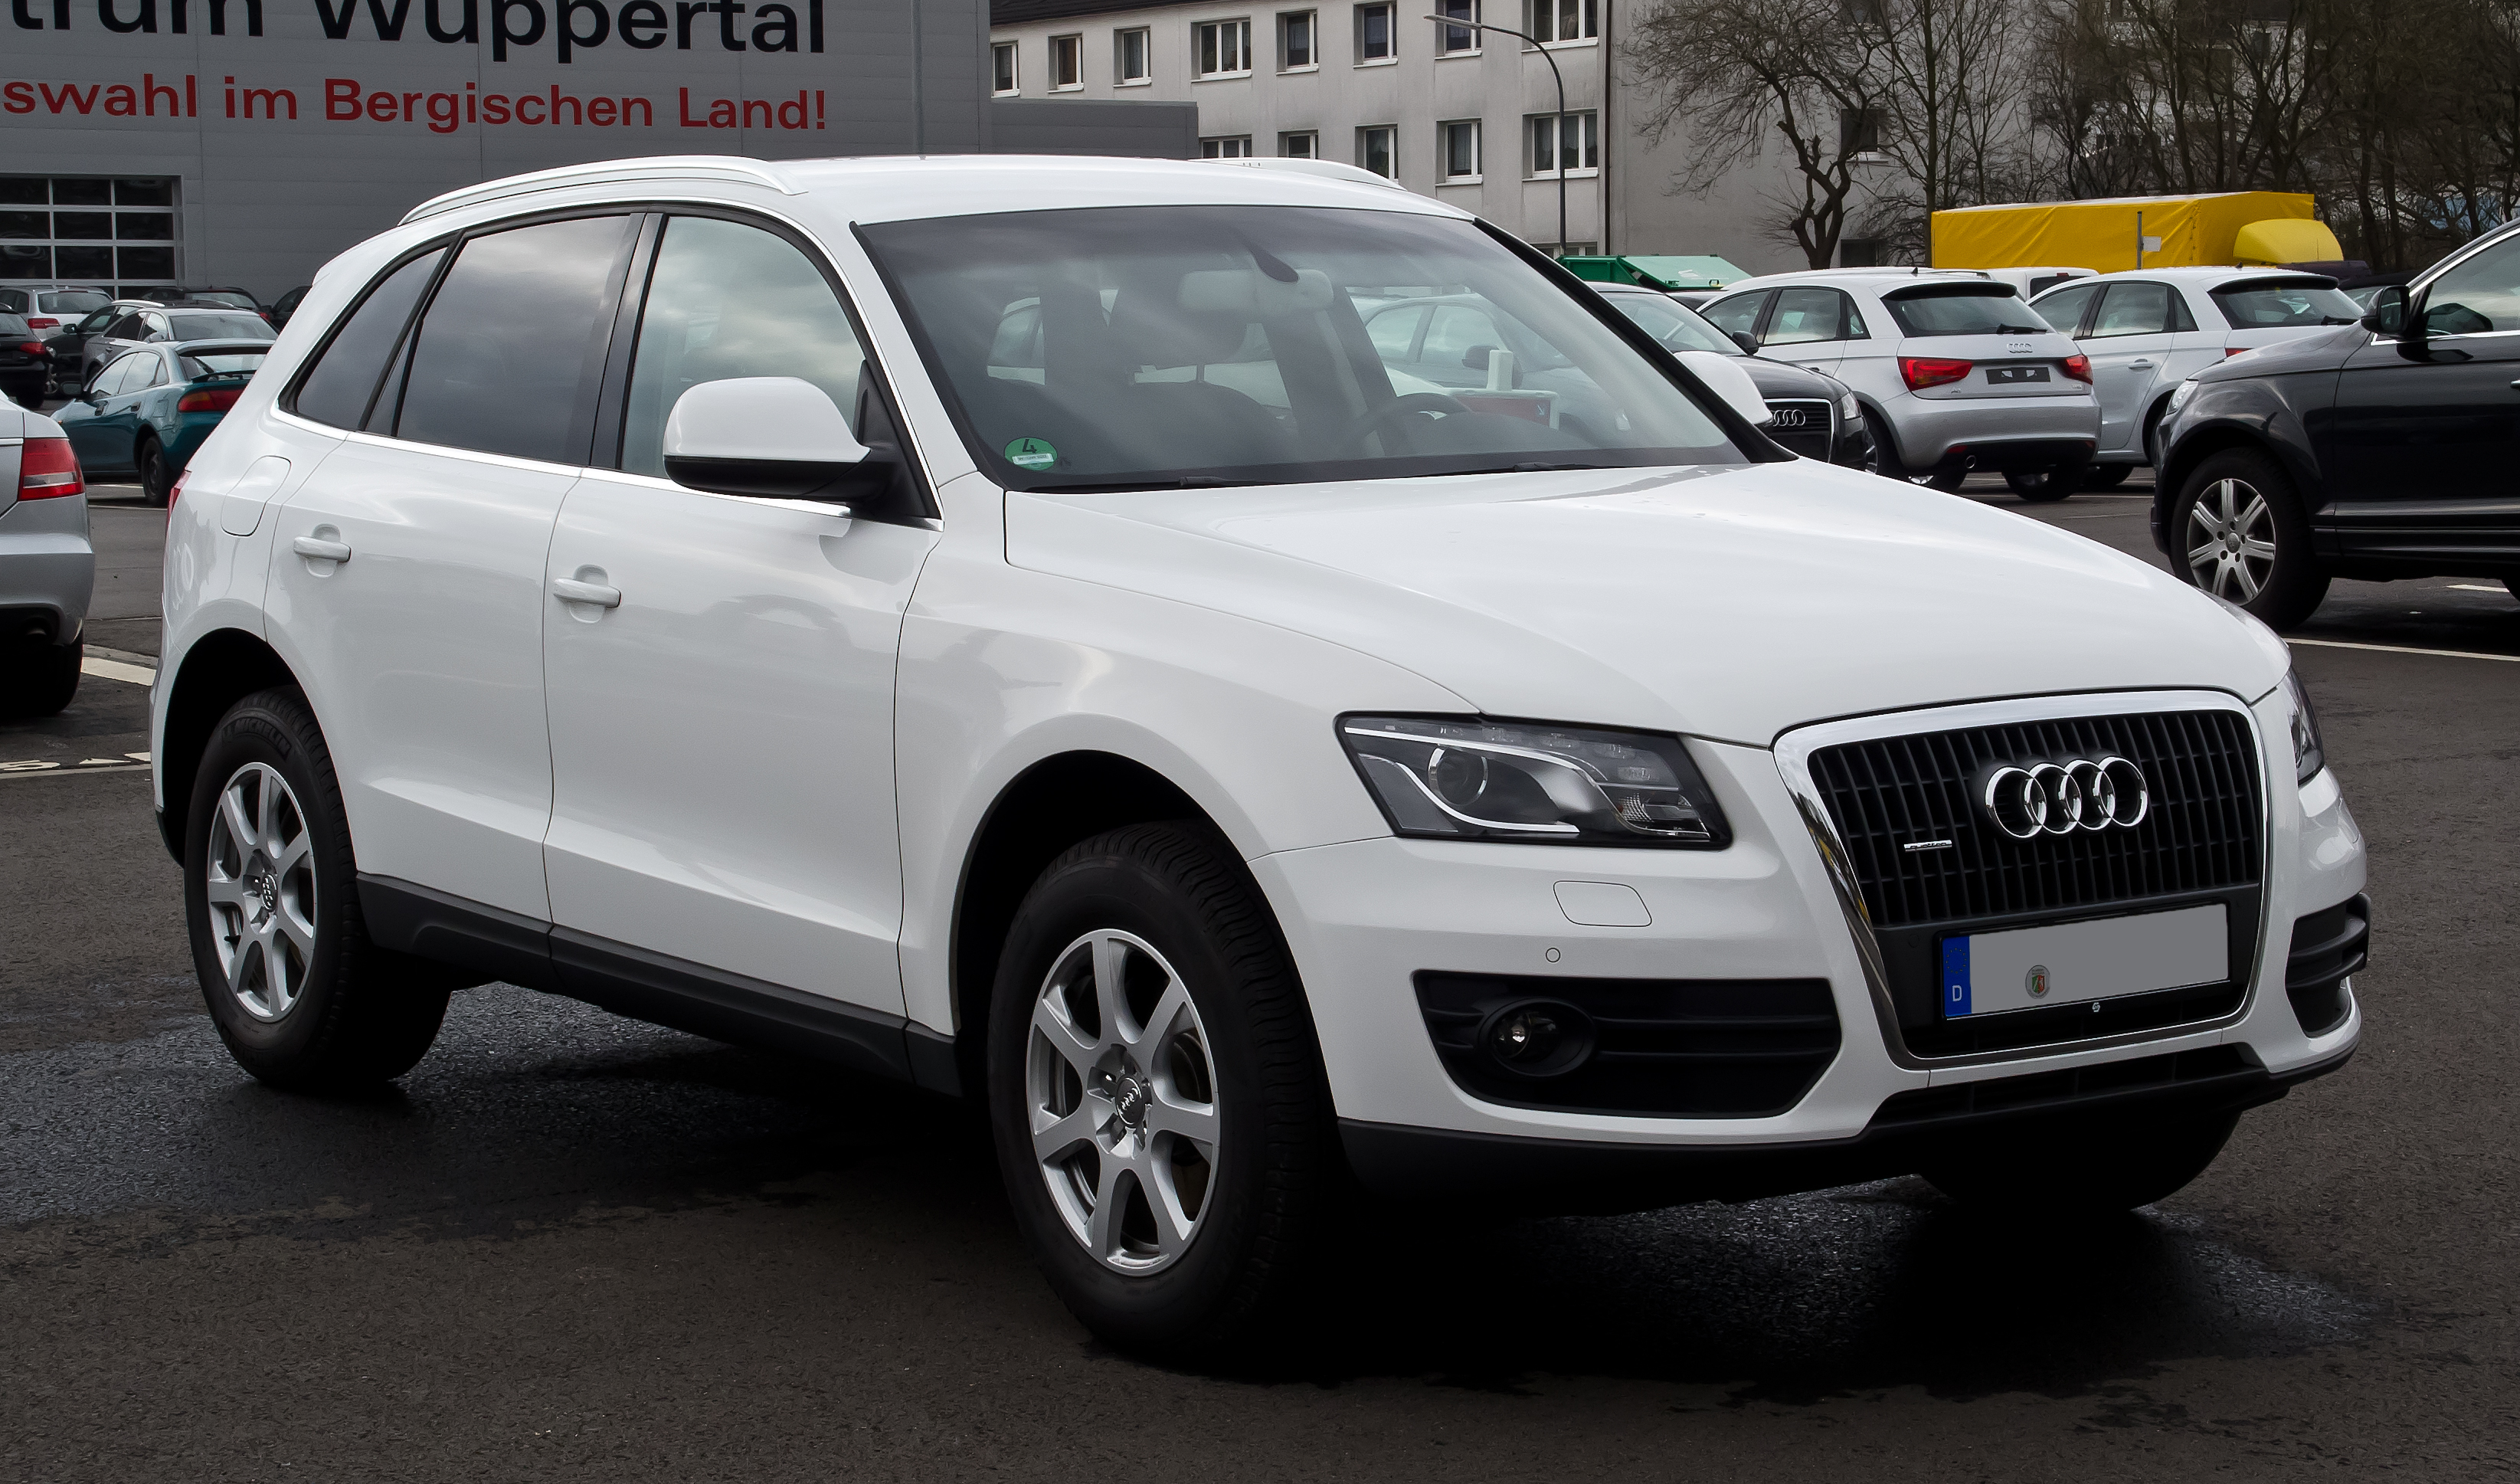 Amazoncom 2016 Audi Q5 Reviews Images and Specs Vehicles